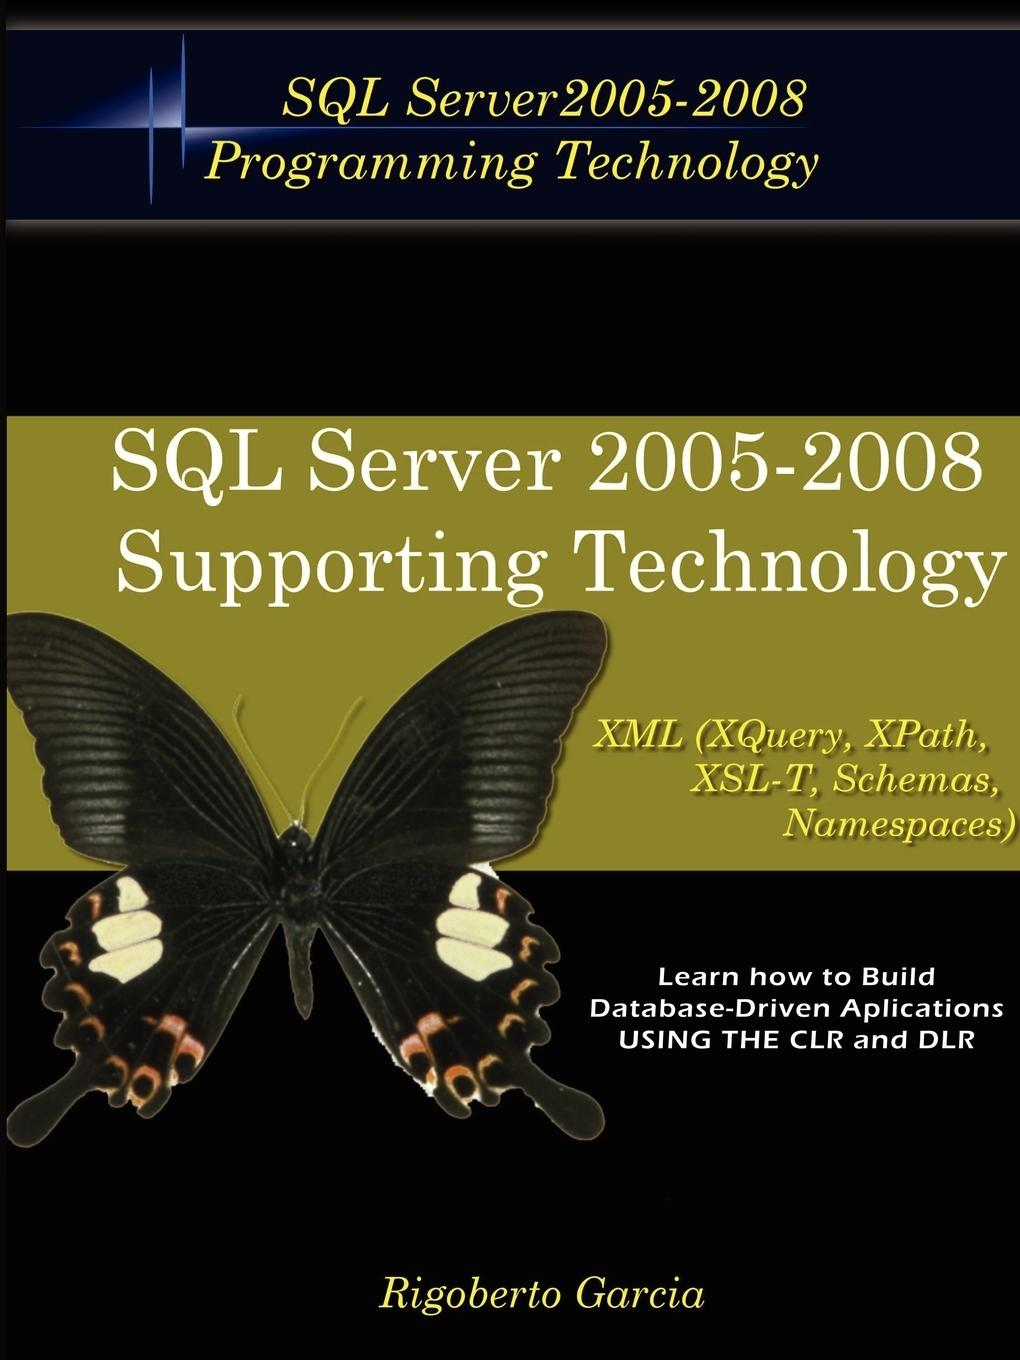 Foundations Book II  Understanding SQL Server 2005 Supporting Technology (XML, XSLT, Xquery, Xpath, MS Schemas, Dtd's, Namespaces).  Rigoberto Garcia  Taschenbuch  Paperback  Englisch  2007 - Garcia, Rigoberto